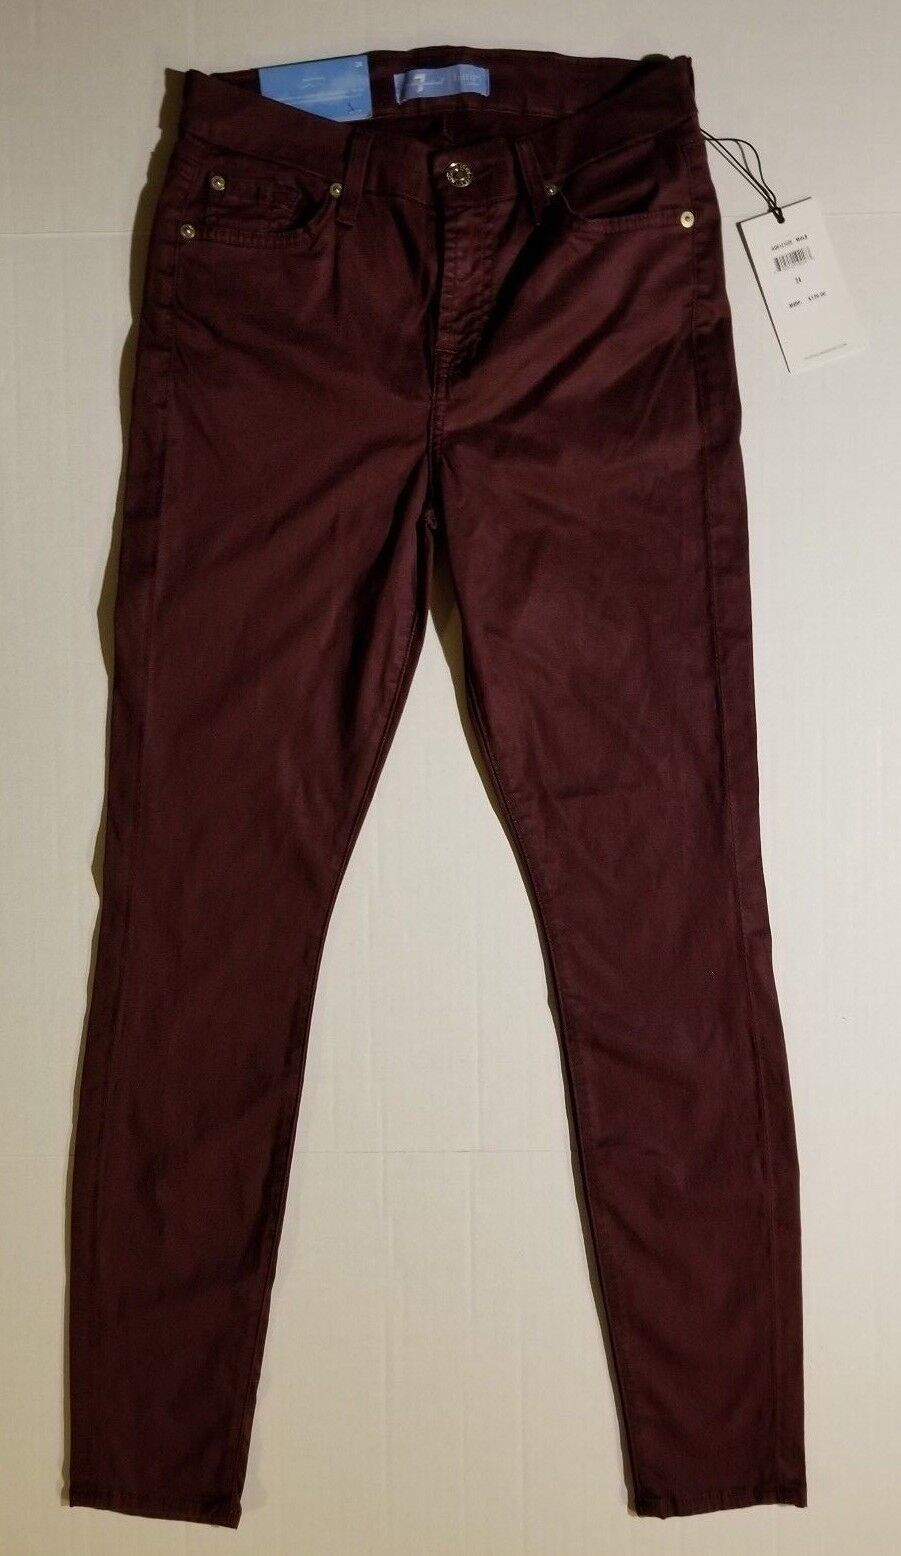 7 FOR ALL MANKIND WOMENS B(AIR) ANKLE SKINNY MULBERRY JEANS NWT MSRP  179.00